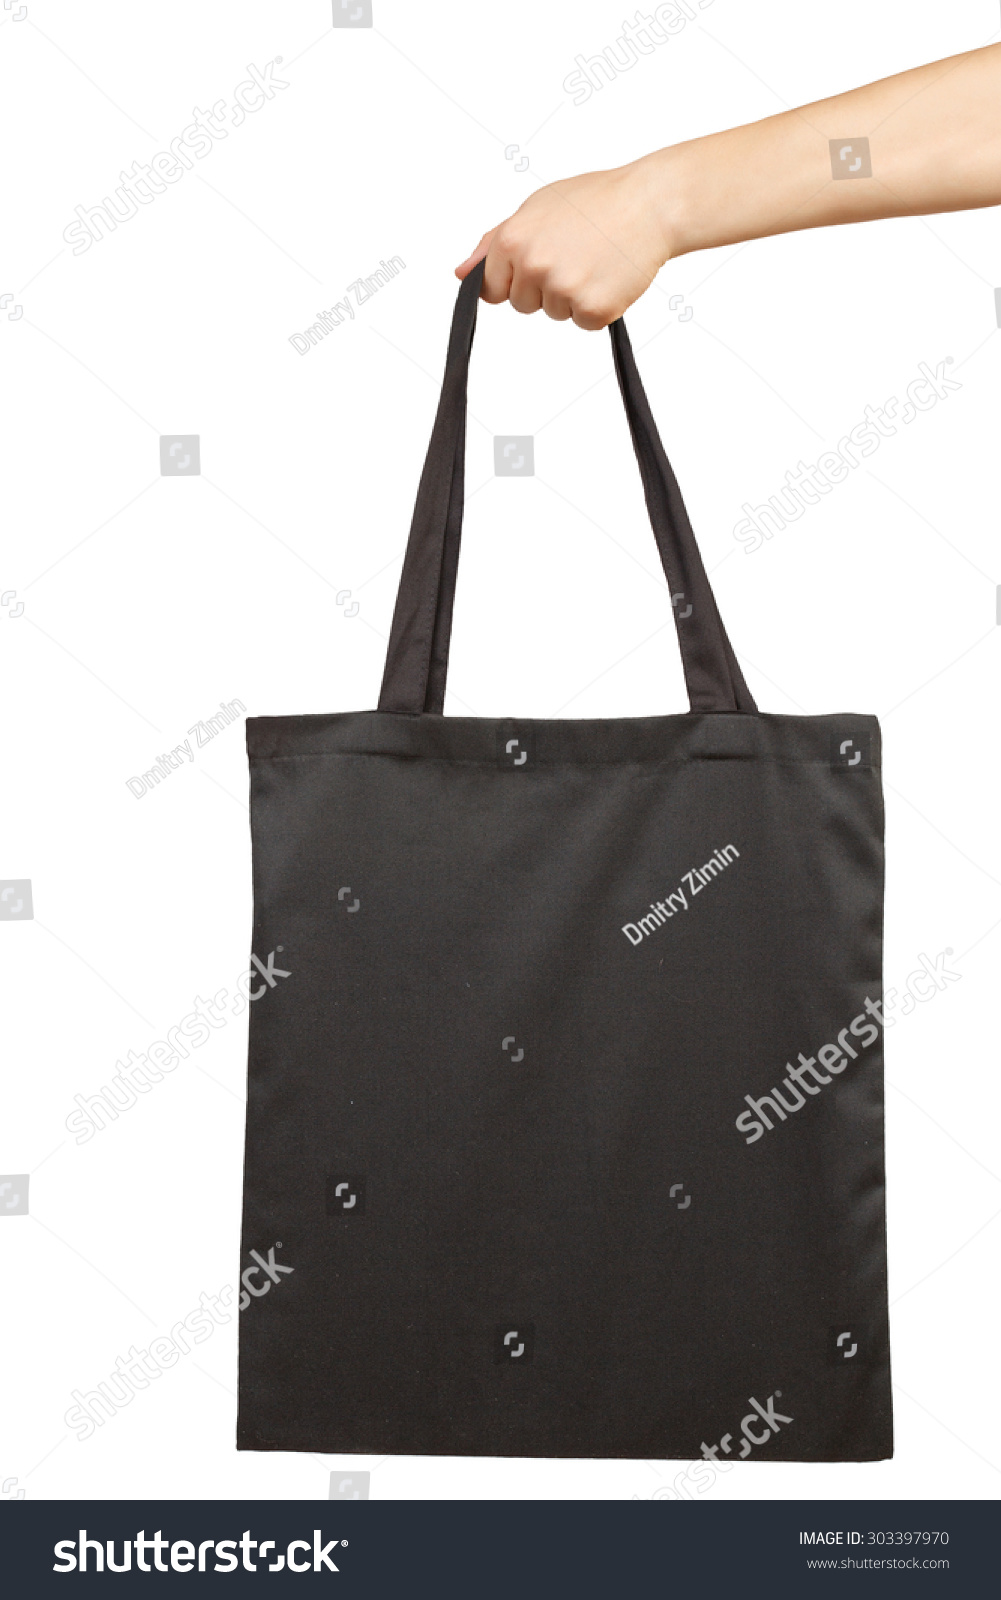 White apron mockup - Hand Holding Blank Fabric Tote Bag Isolated On White